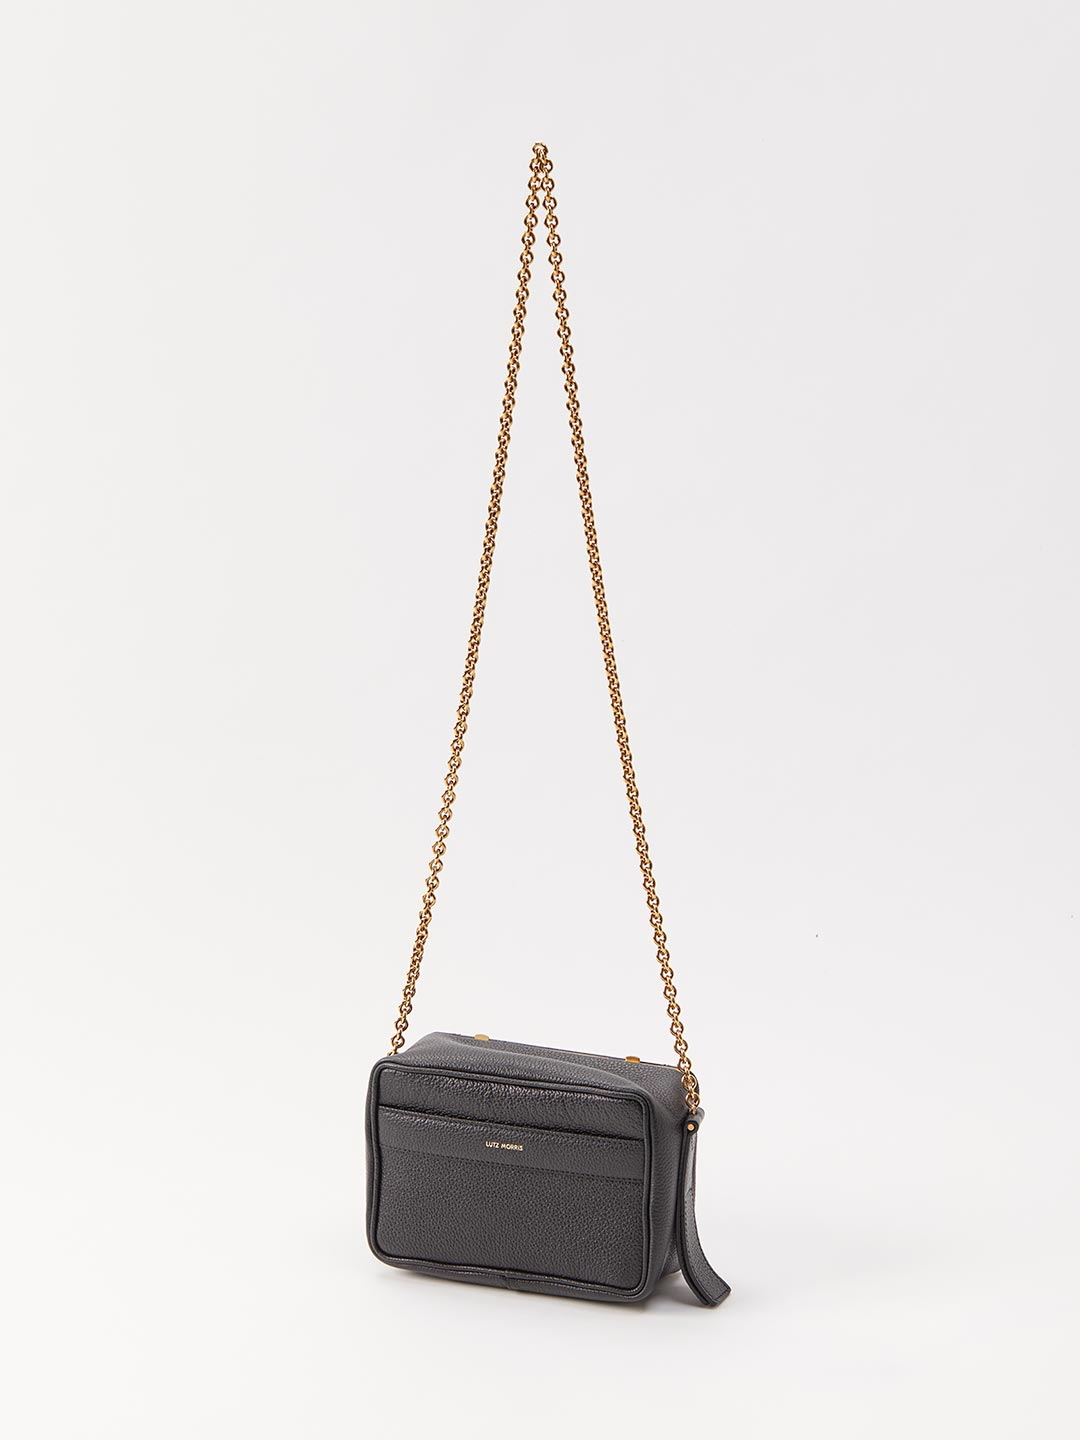 Malloy Medium Cross Body Chain Bag - Black